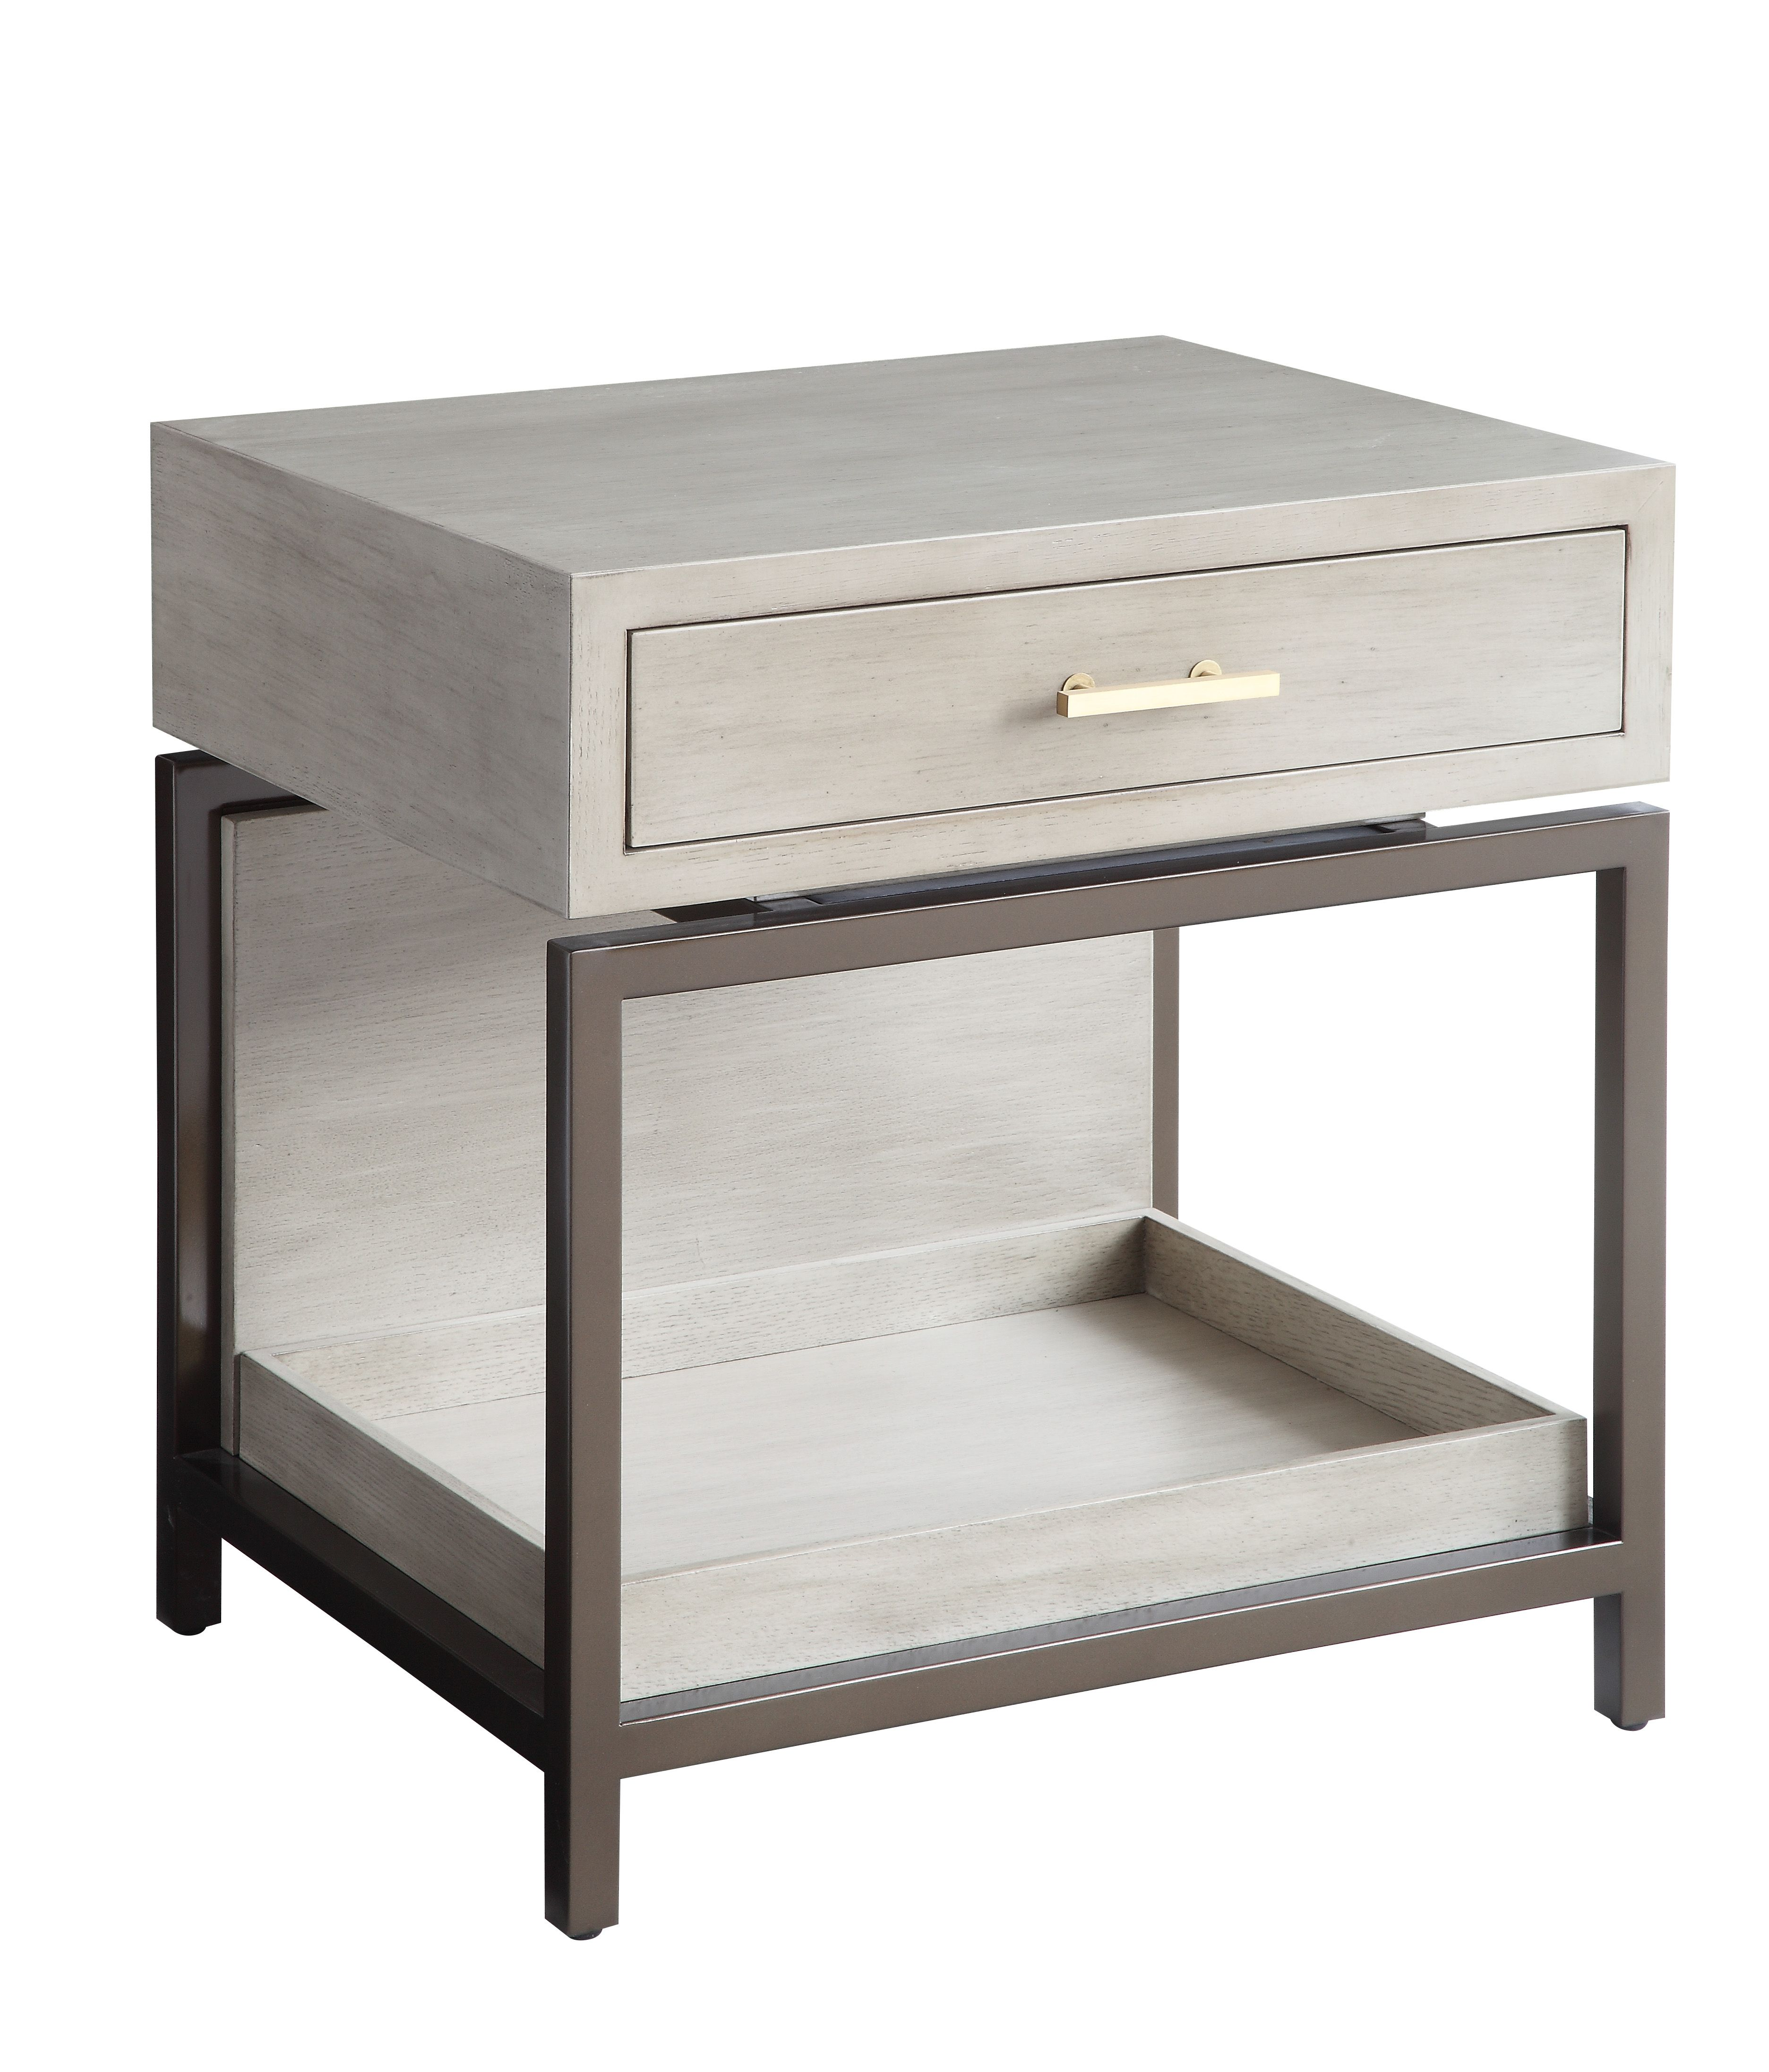 Bedside Tables Modern Guest Bedroom Night Table Chuang床头柜 Pinterest